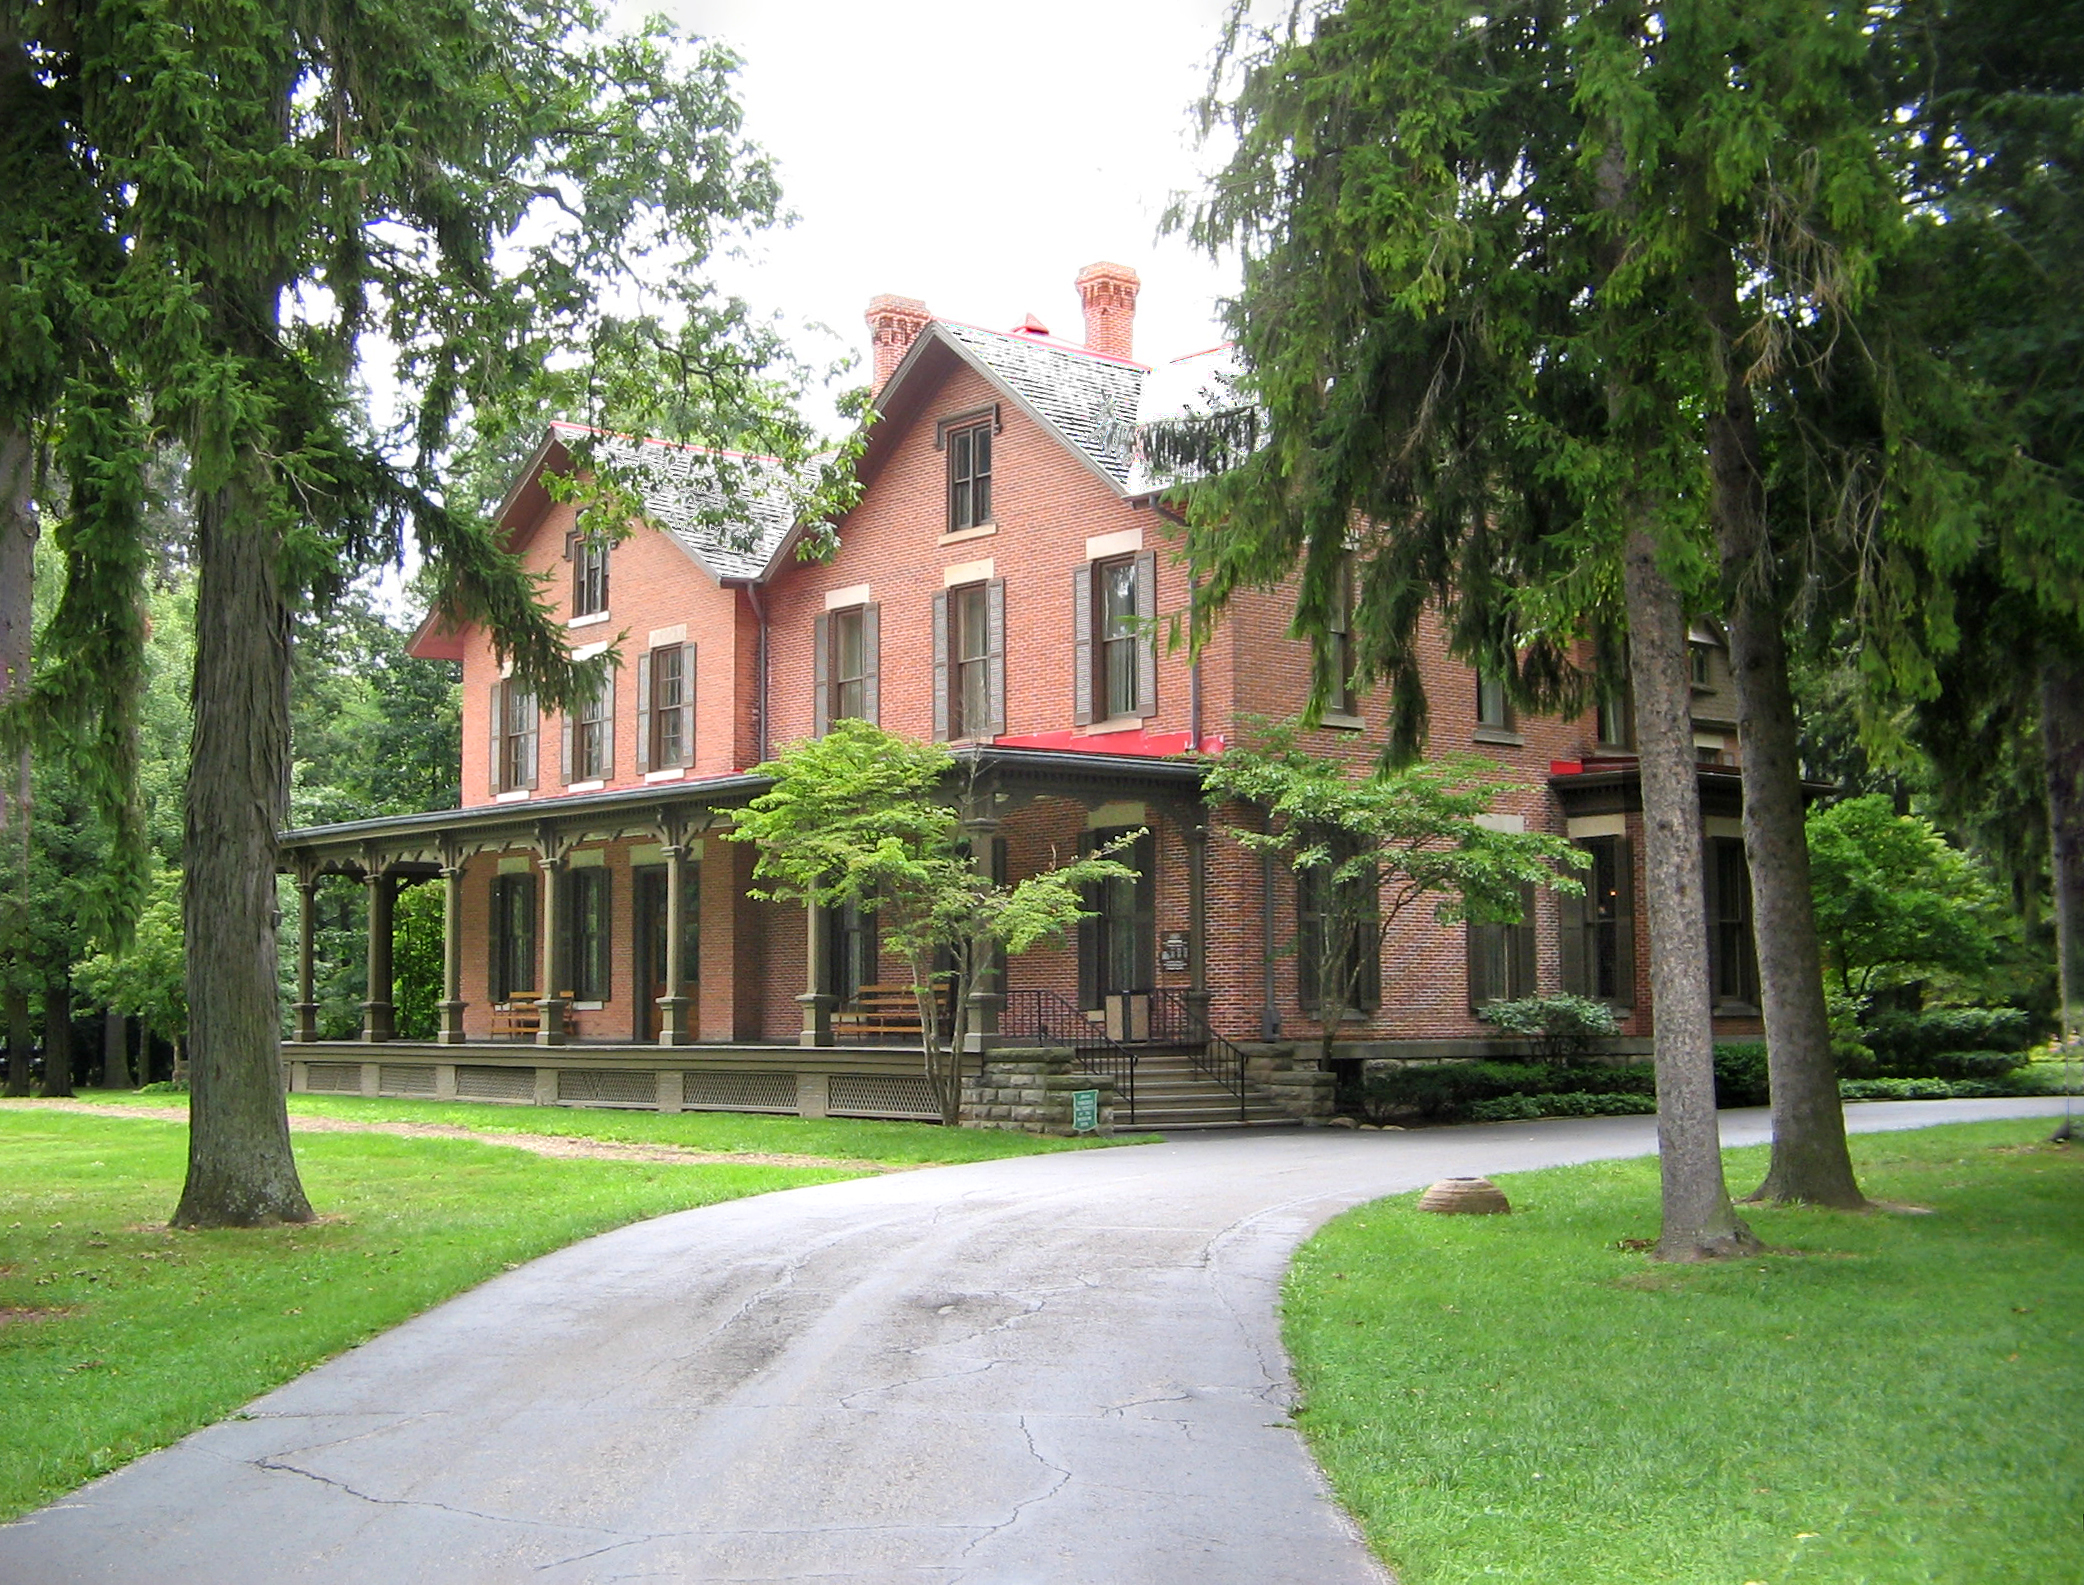 The Rutherford B. Hayes House at Spiegel Grove.